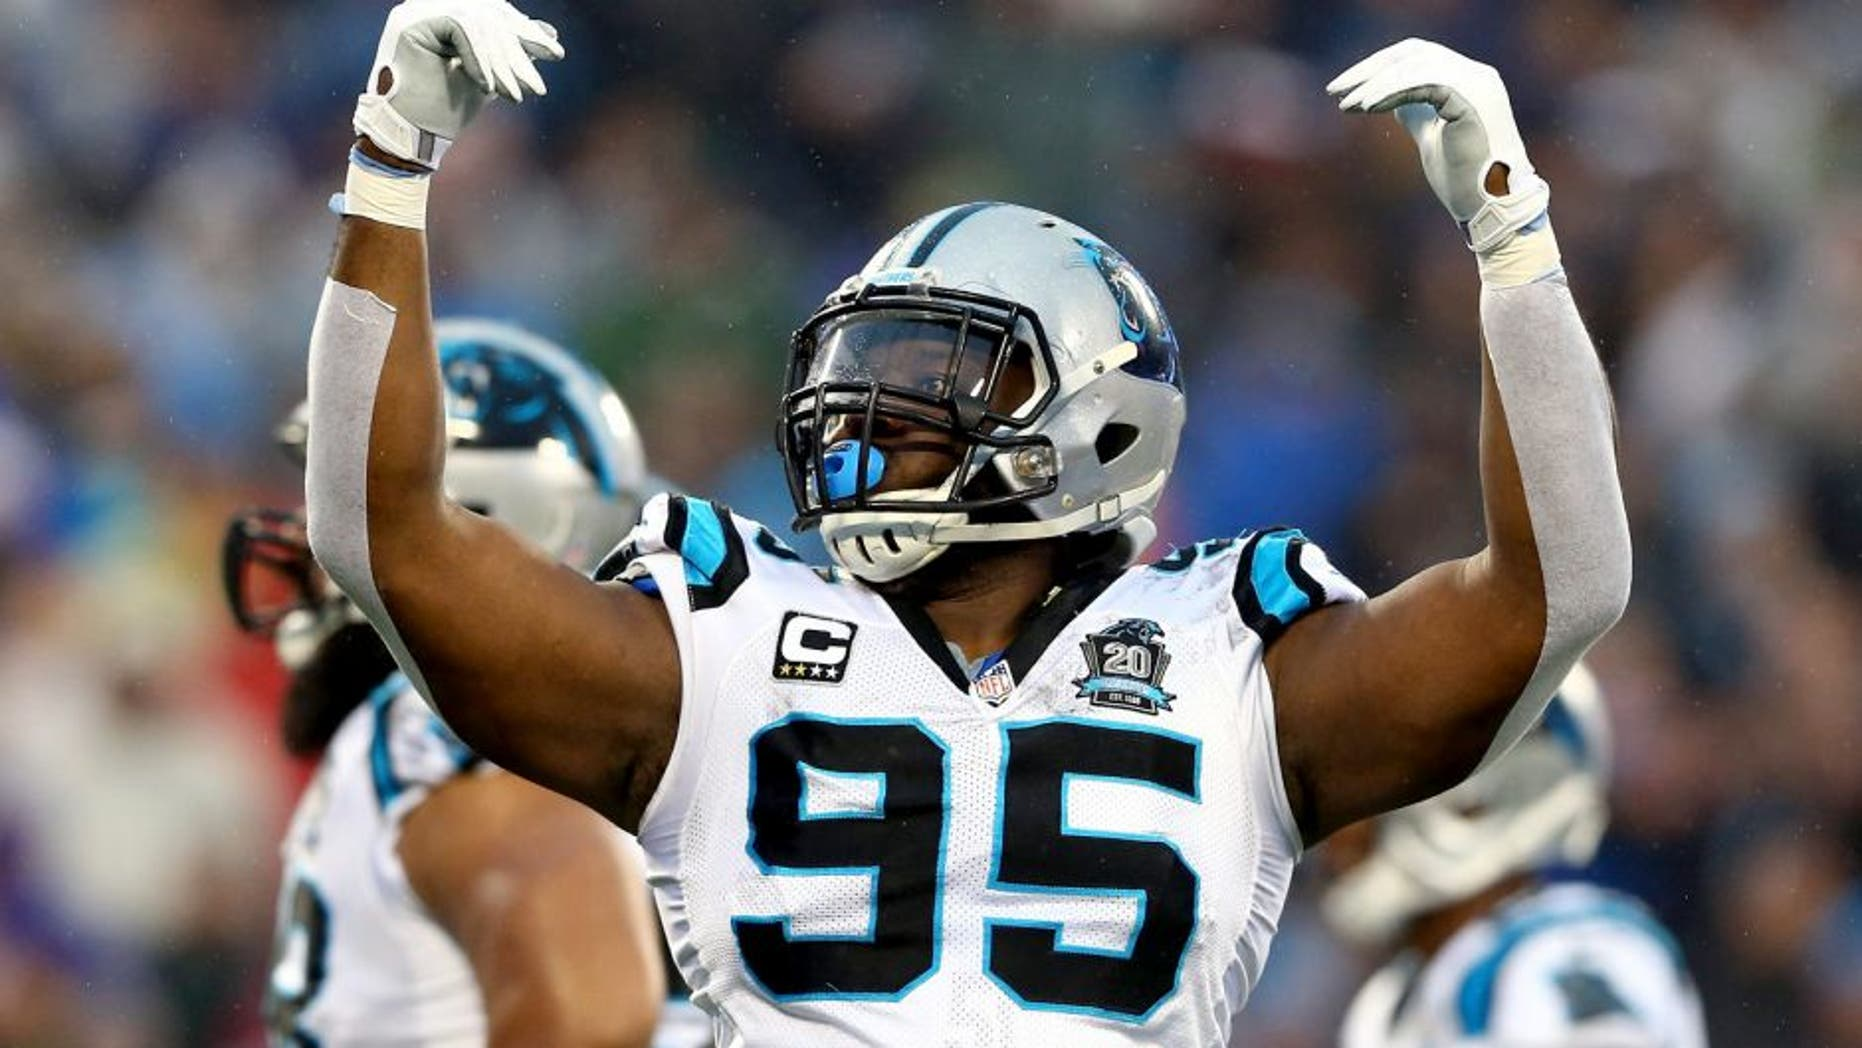 CHARLOTTE, NC - JANUARY 03: Charles Johnson #95 of the Carolina Panthers celebrates during their NFC Wild Card Playoff game against the Arizona Cardinals at Bank of America Stadium on January 3, 2015 in Charlotte, North Carolina. (Photo by Streeter Lecka/Getty Images)